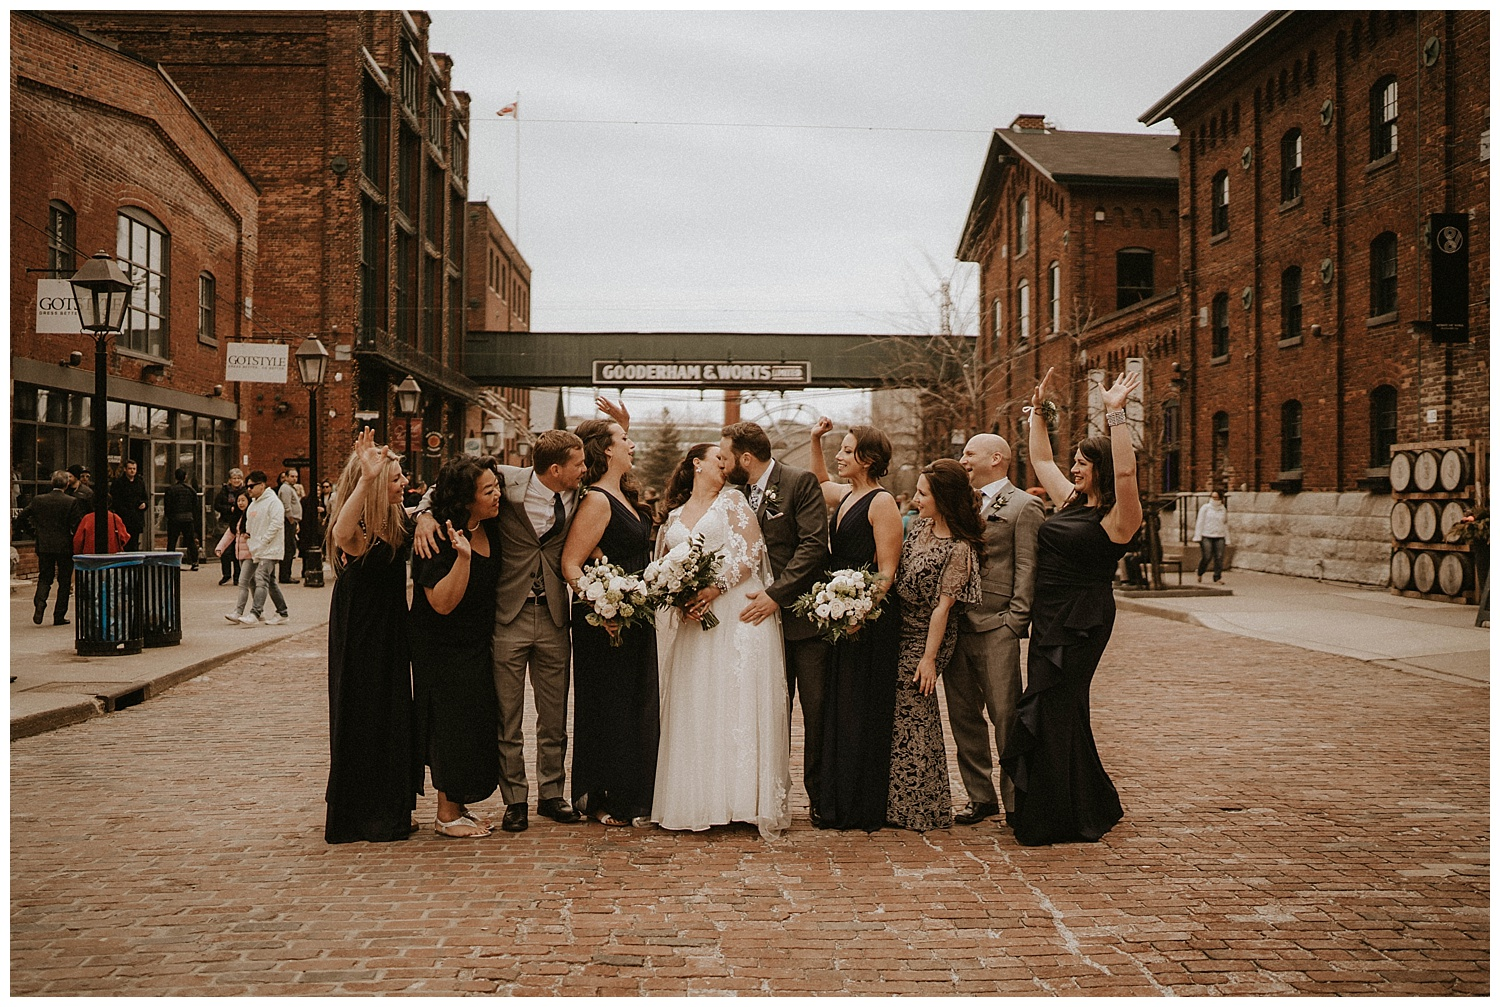 Katie Marie Photography | Archeo Wedding Arta Gallery Wedding | Distillery District Wedding | Toronto Wedding Photographer | Hamilton Toronto Ontario Wedding Photographer |_0060.jpg